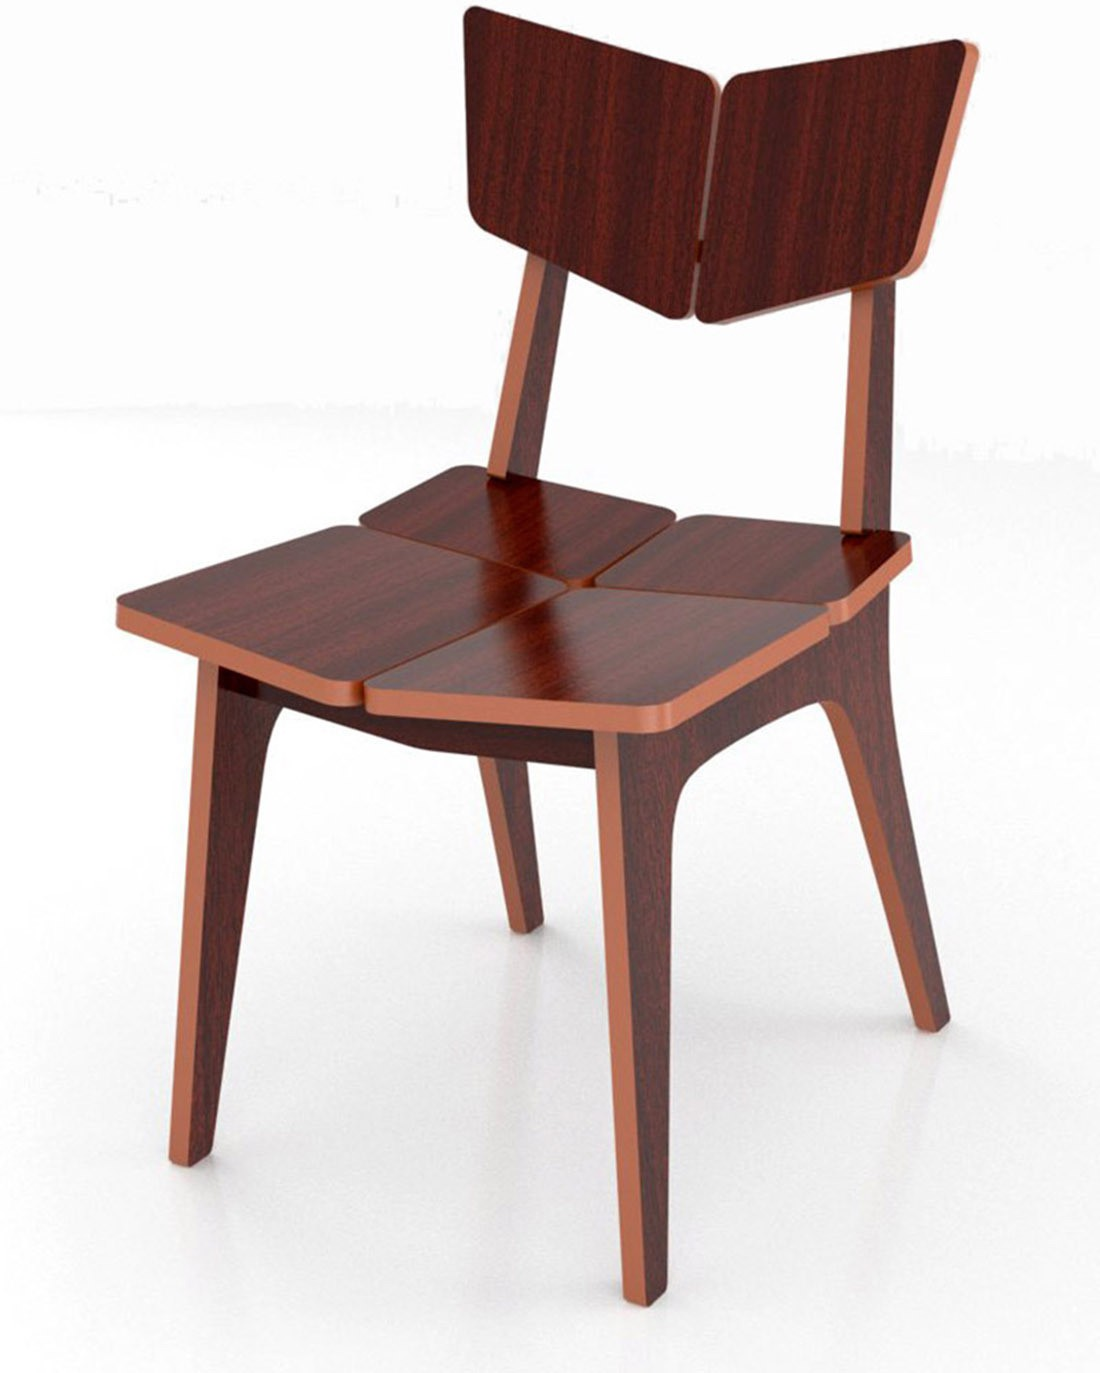 3933979cae Crosscut Furniture Engineered Wood Dining Chair